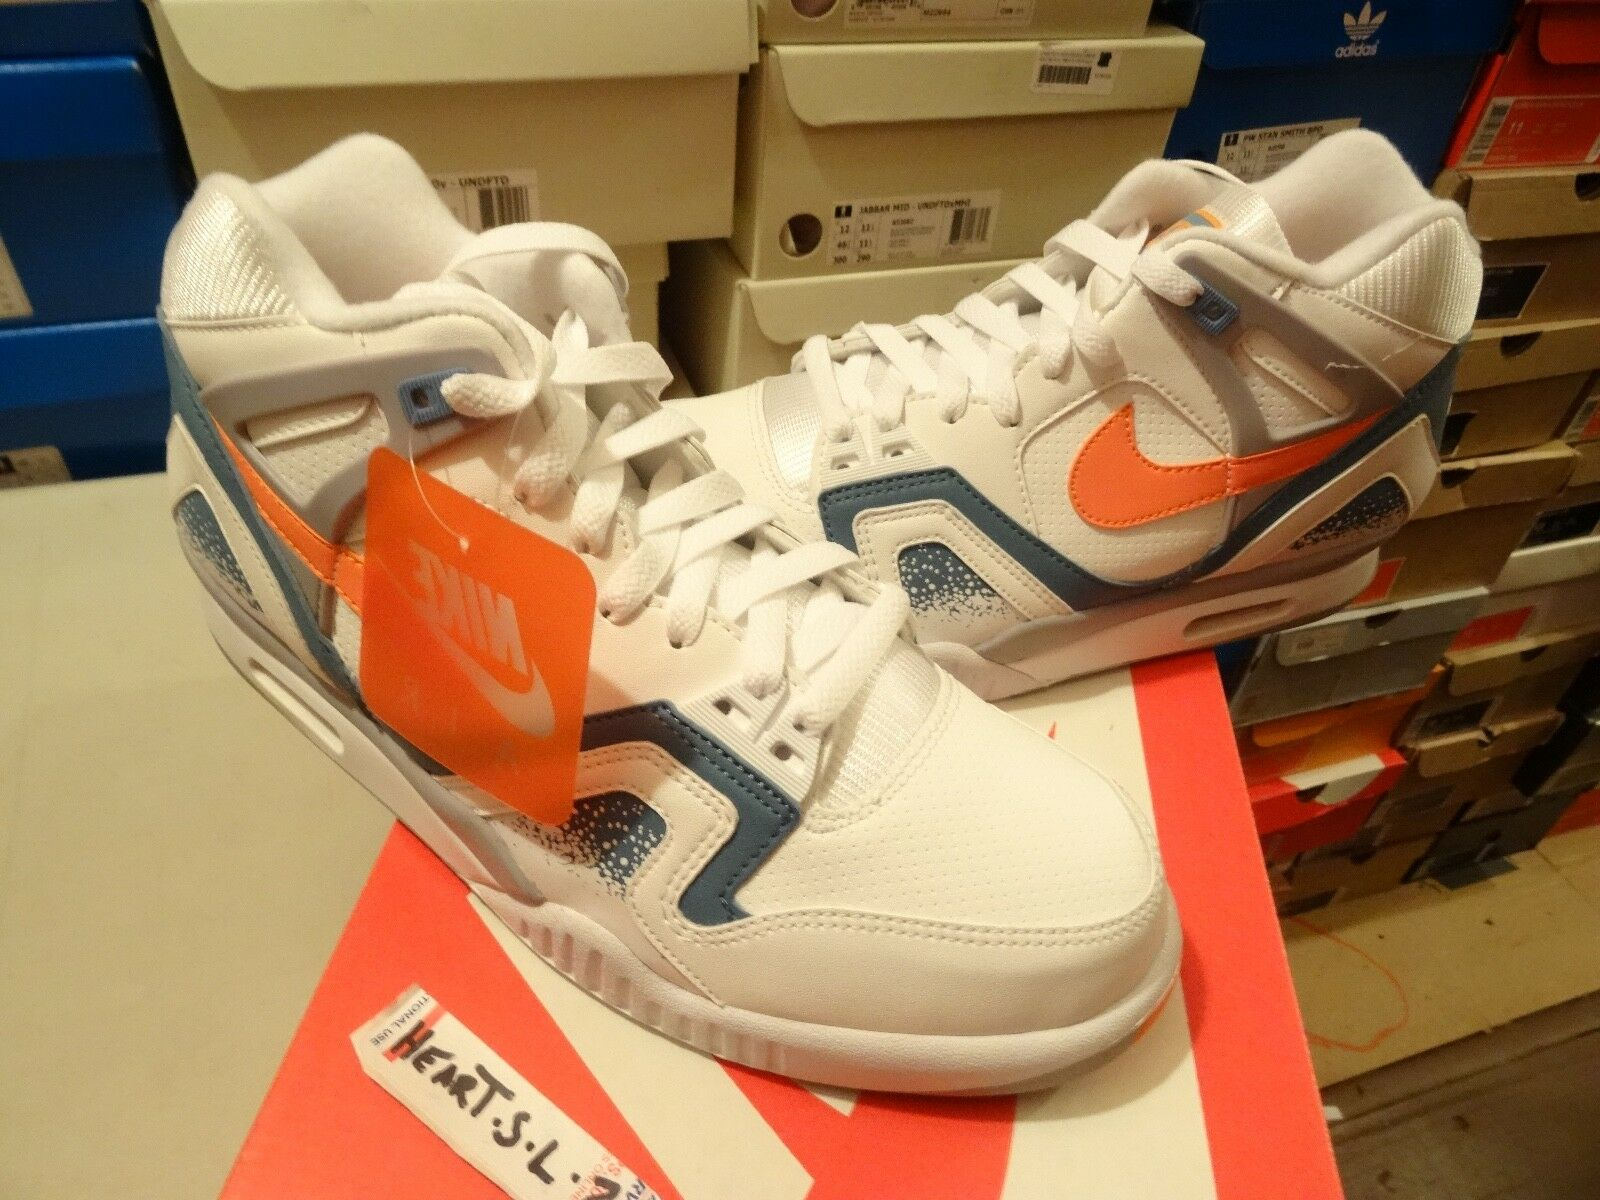 b406ff73487 NEW NIKE AIR TECH CHALLENGE II 643089-184 SZ 9.5 DS US OPEN SUPREME ...